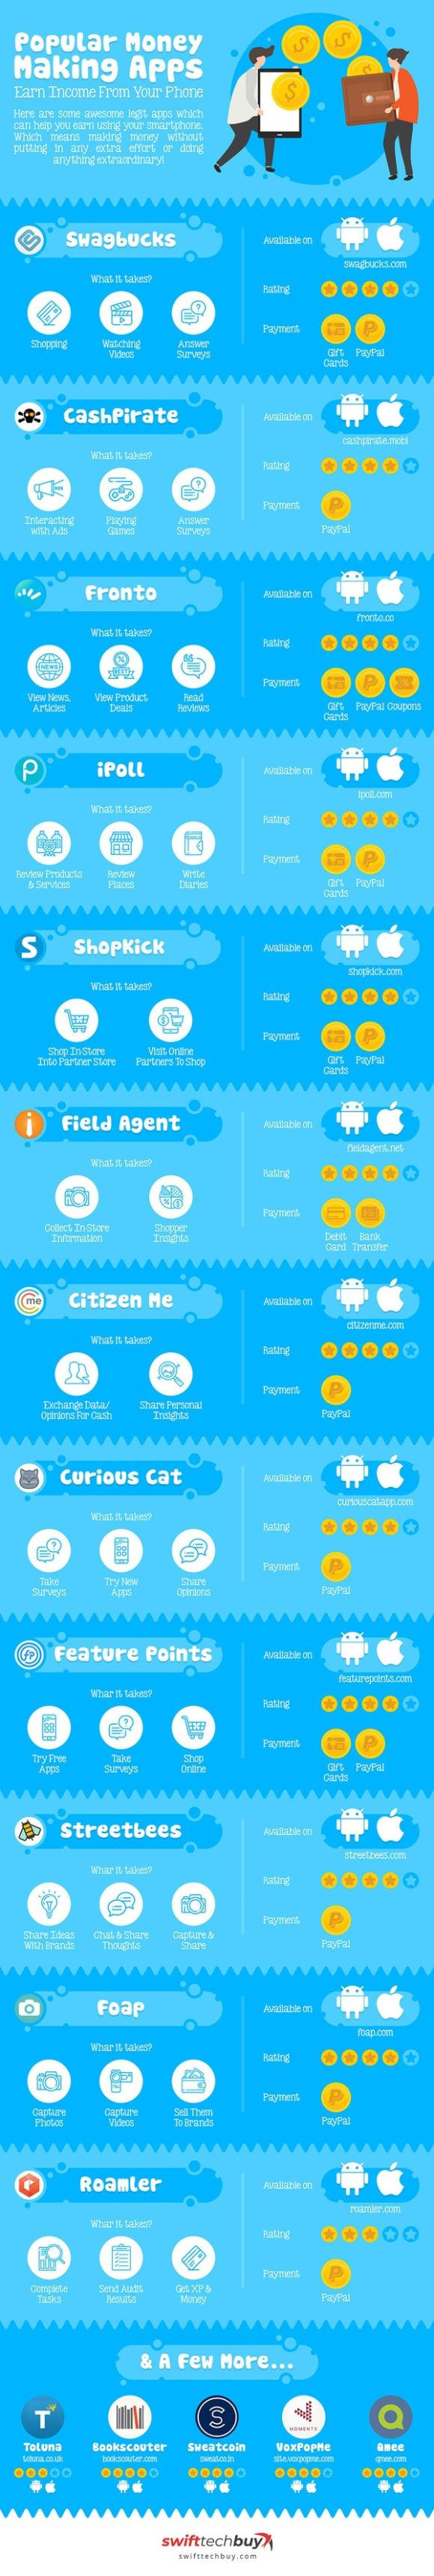 popular money making apps infographic